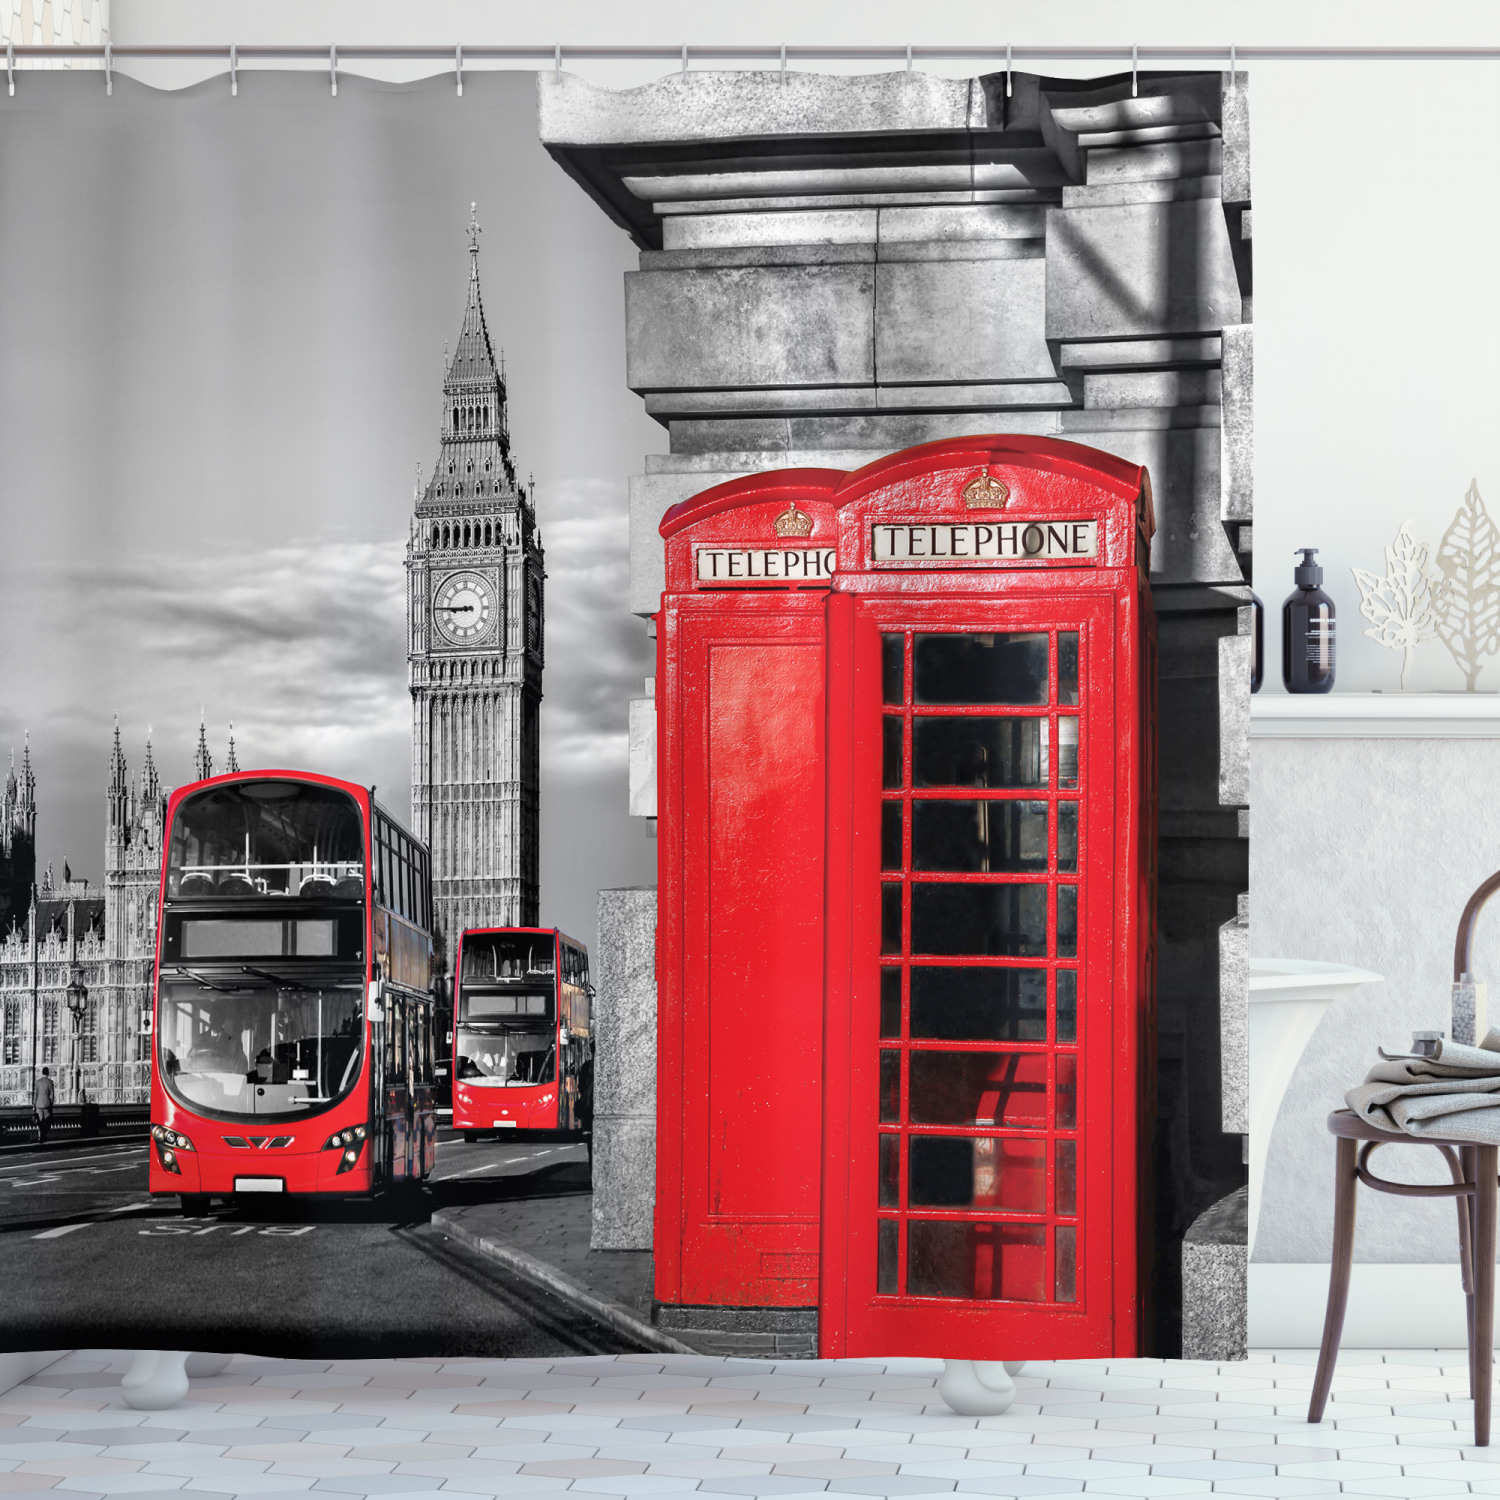 london decor shower curtain set london telephone booth in the street traditional local cultural icon england uk retro print bathroom accessories